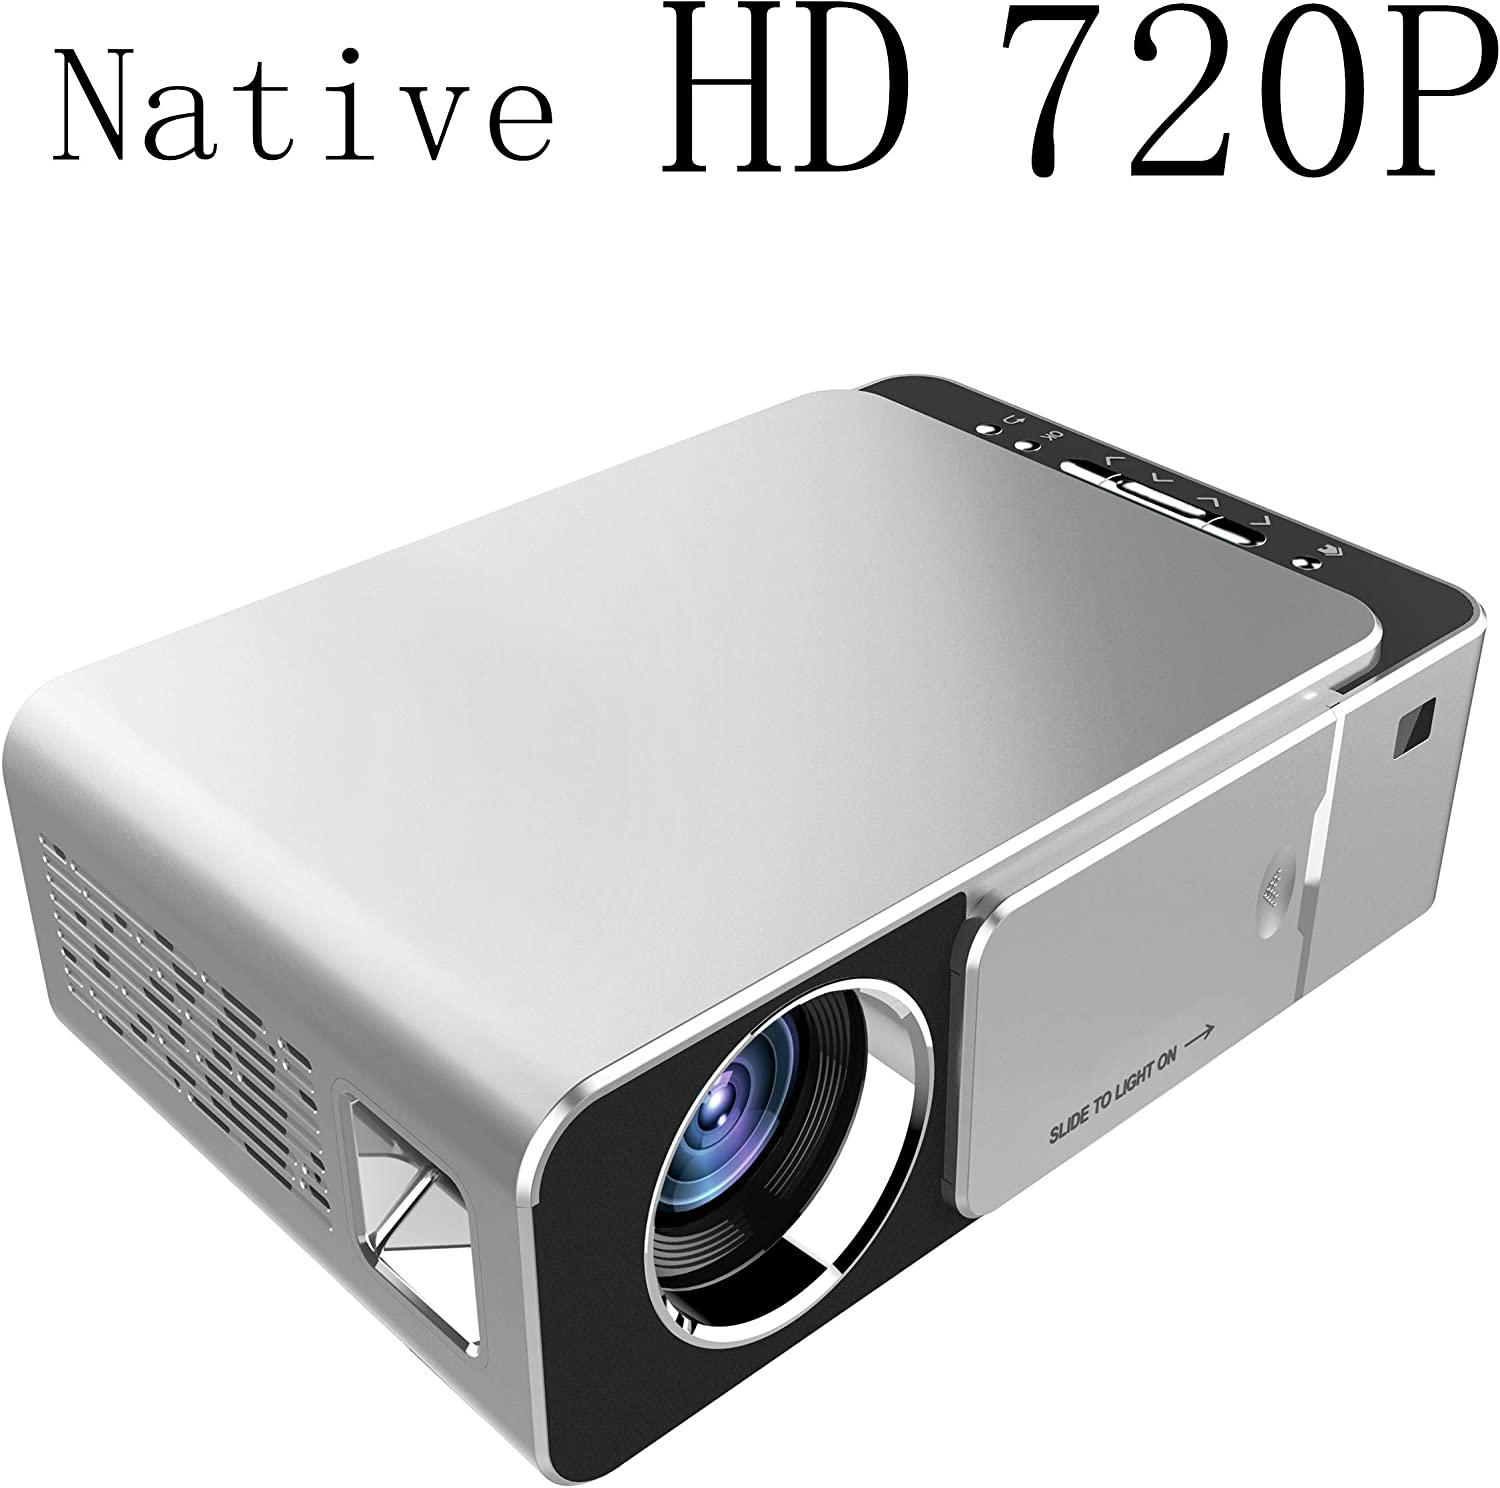 Mcwell Mini Projector,2500 Lumens LED Portable Full HD Multimedia Home Theater Video Projector 1080P Support for Home Cinema,Movie,Game,TV,Laptop,Smartphone